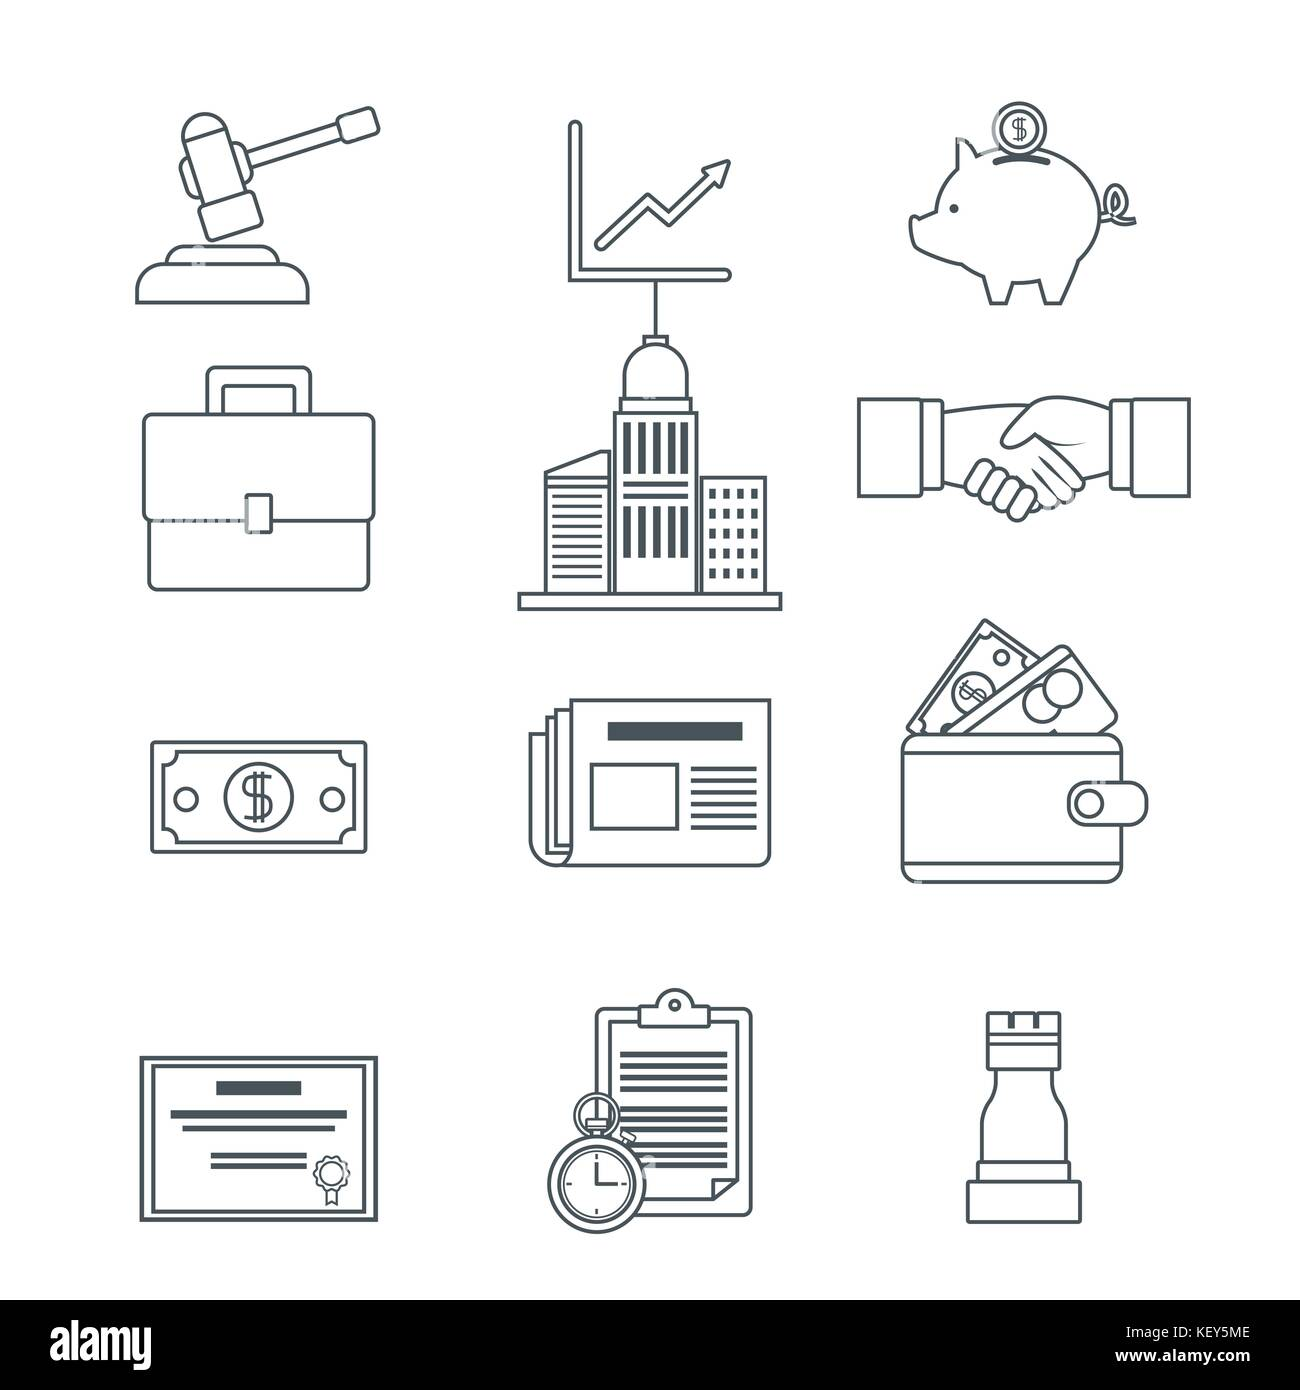 Digital marketing and business icons - Stock Image